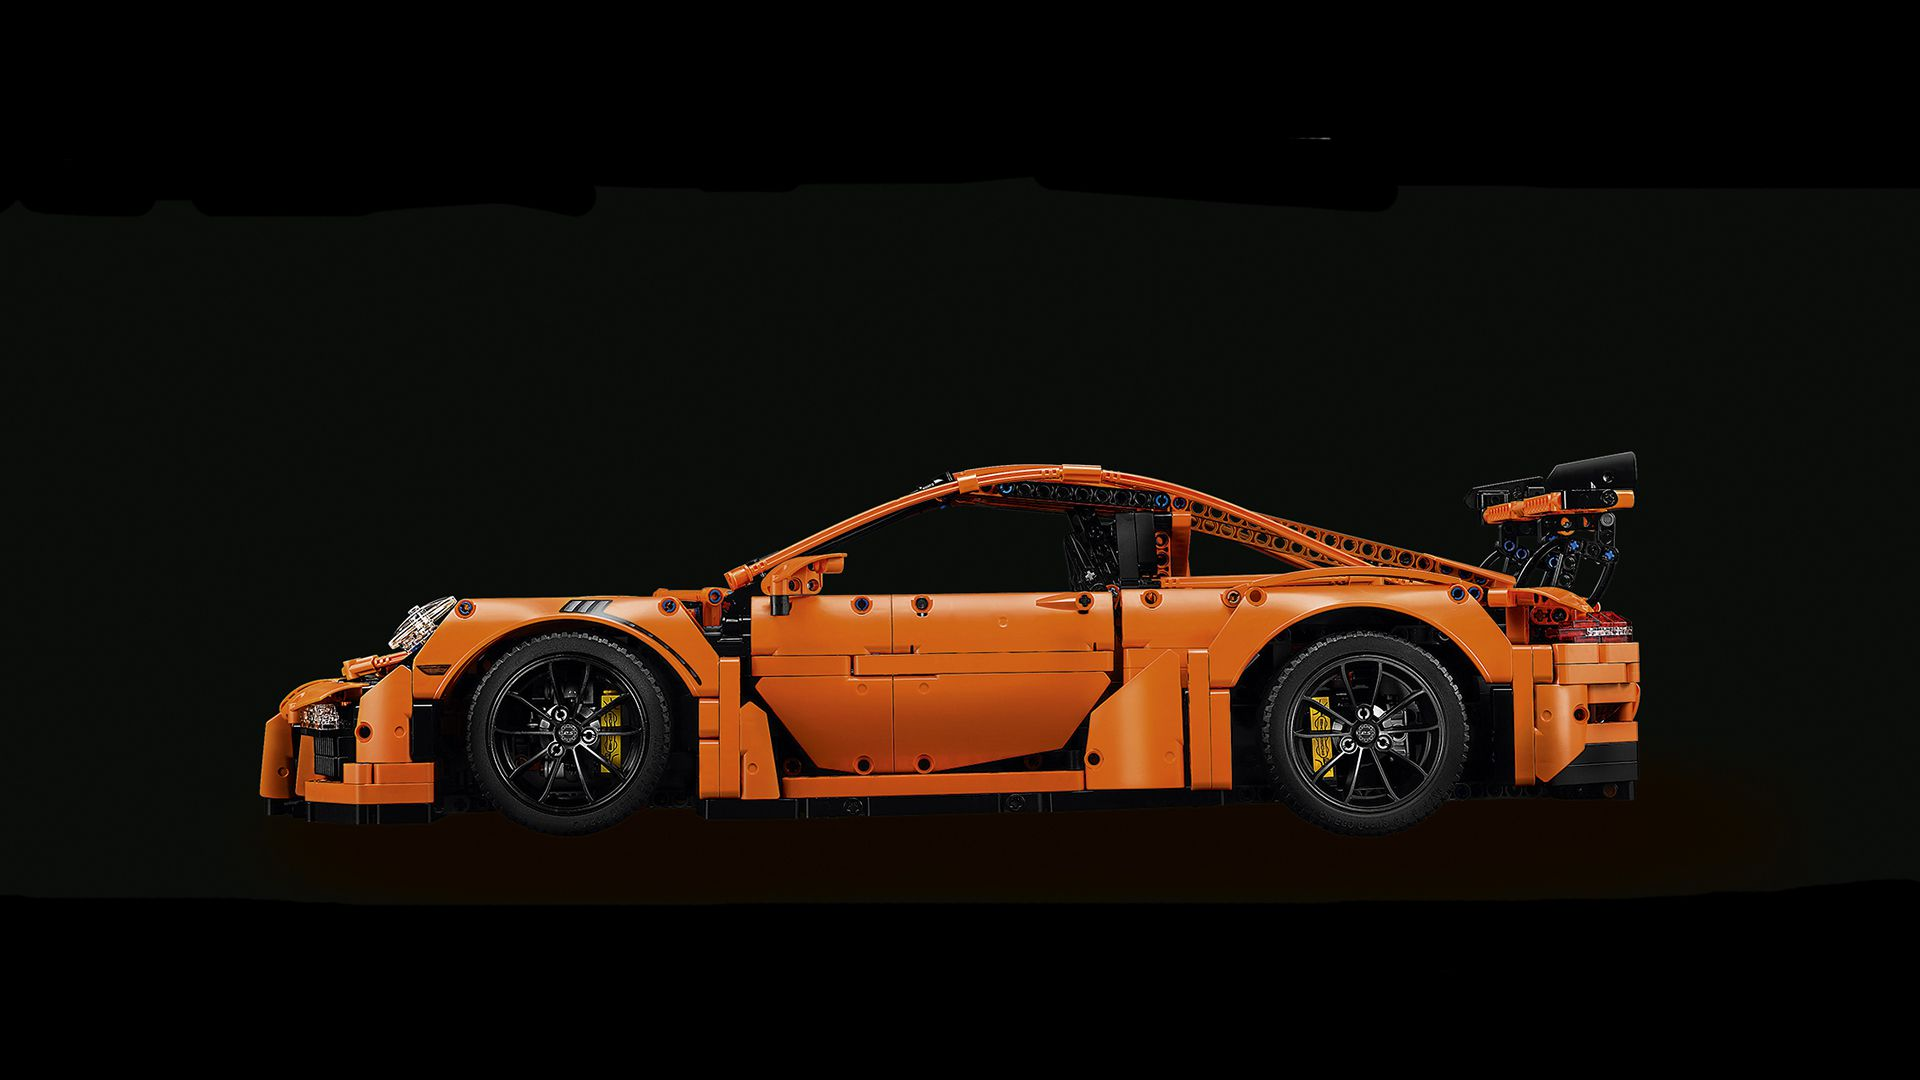 LEGO Technic 42056 Porsche 911 GT3 RS LEGO-Technic-42056-Porsche-911-GT3-RS-side.jpg